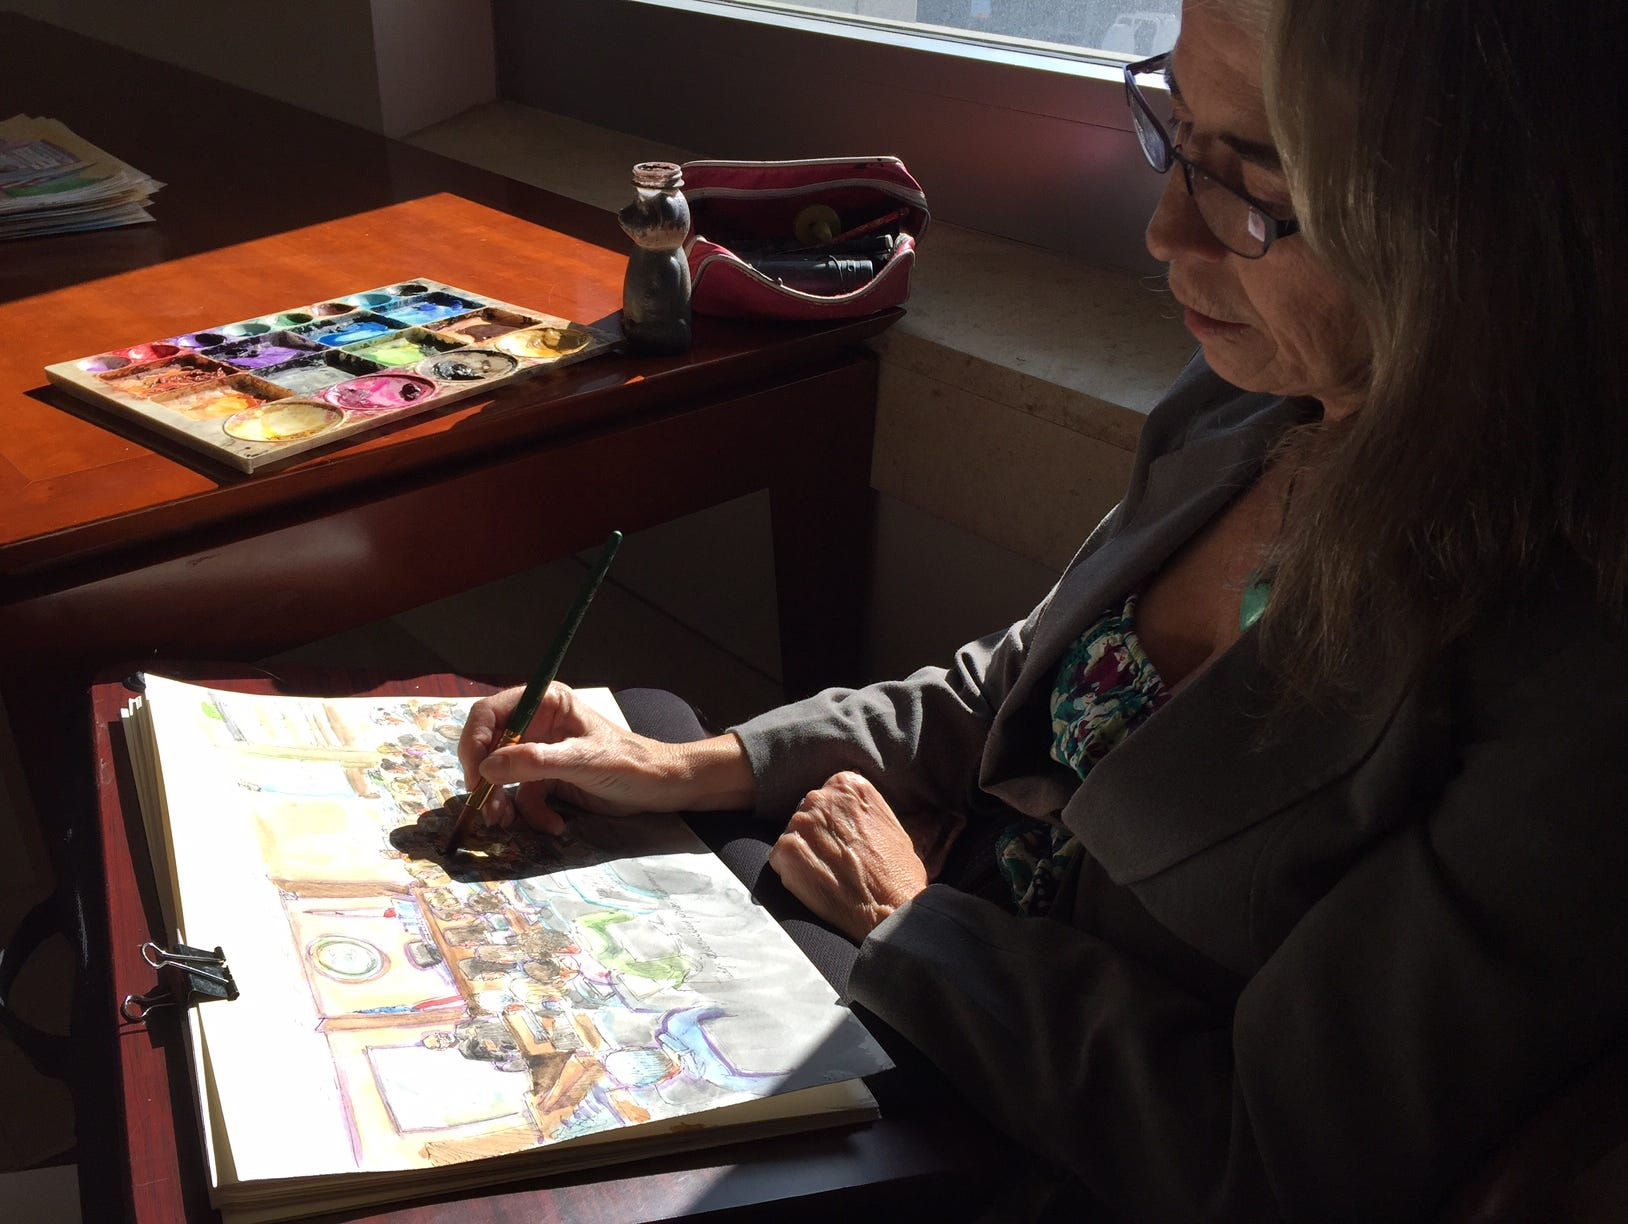 Courtroom artist Vicki Behringer finishes up a sketch at the Ellen Pao trial on March 25, 2015.